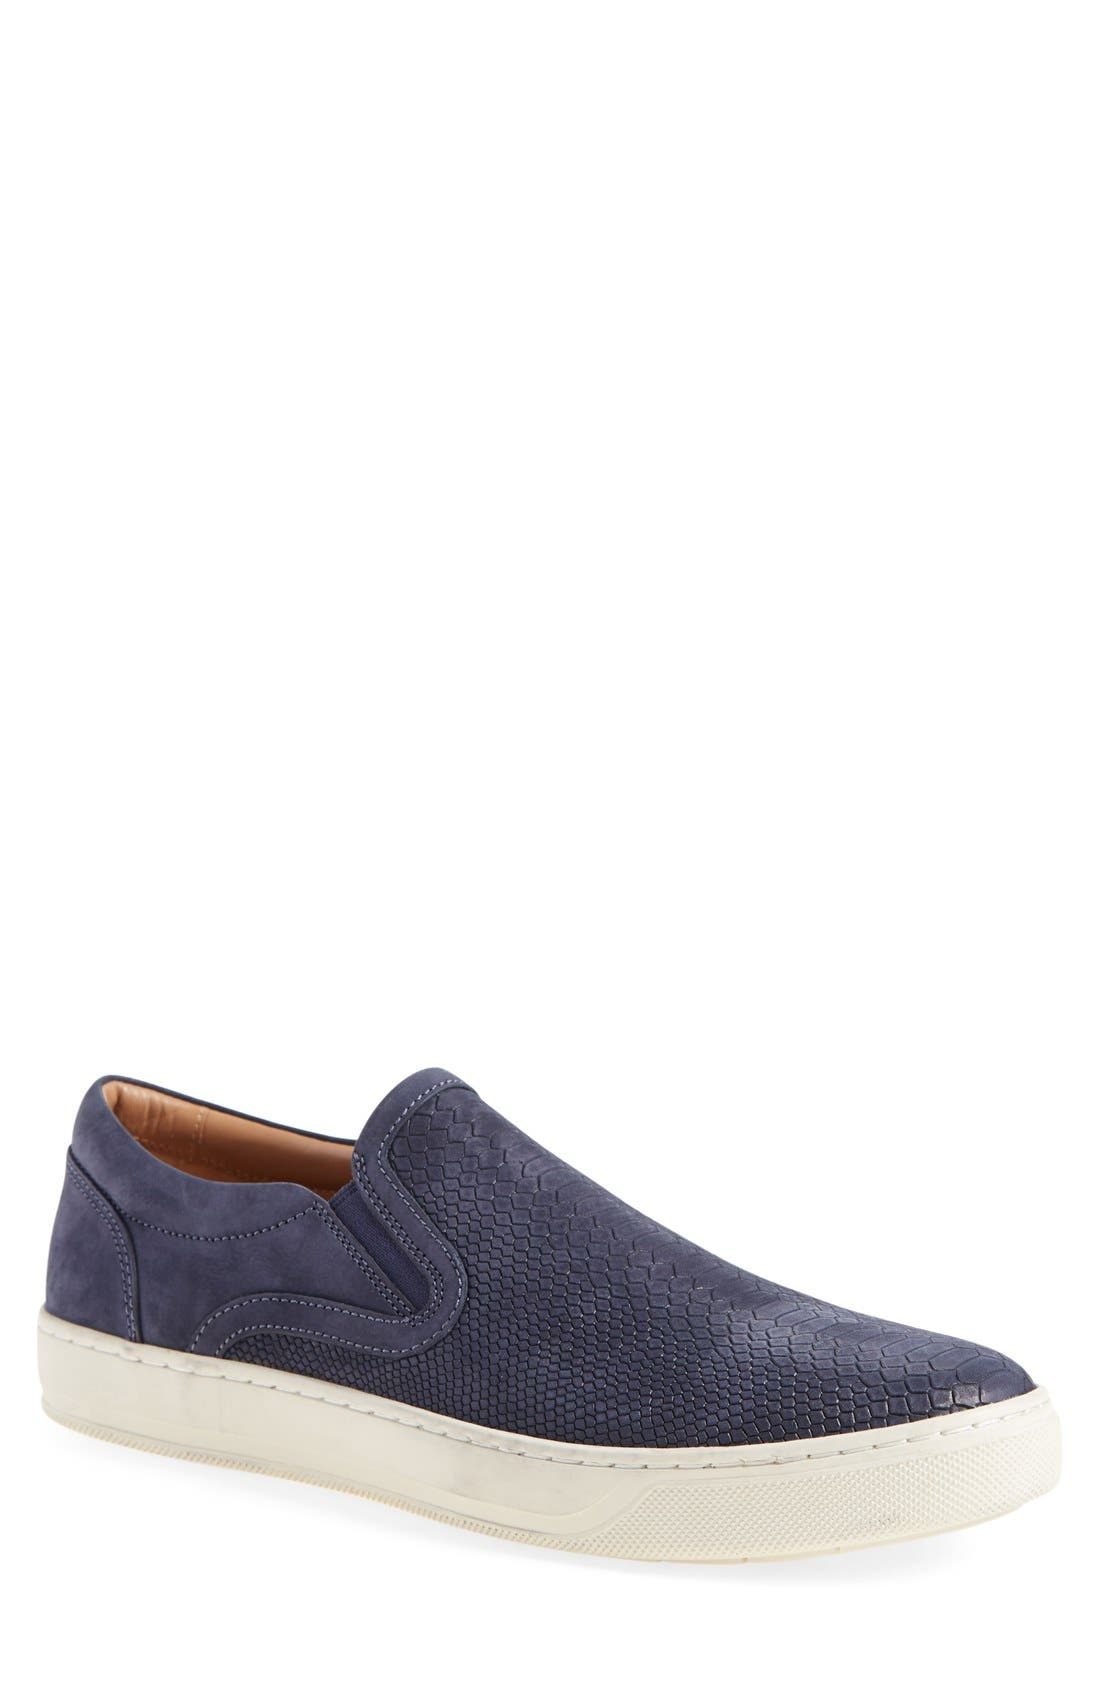 'Ace' Slip-On,                         Main,                         color, 402